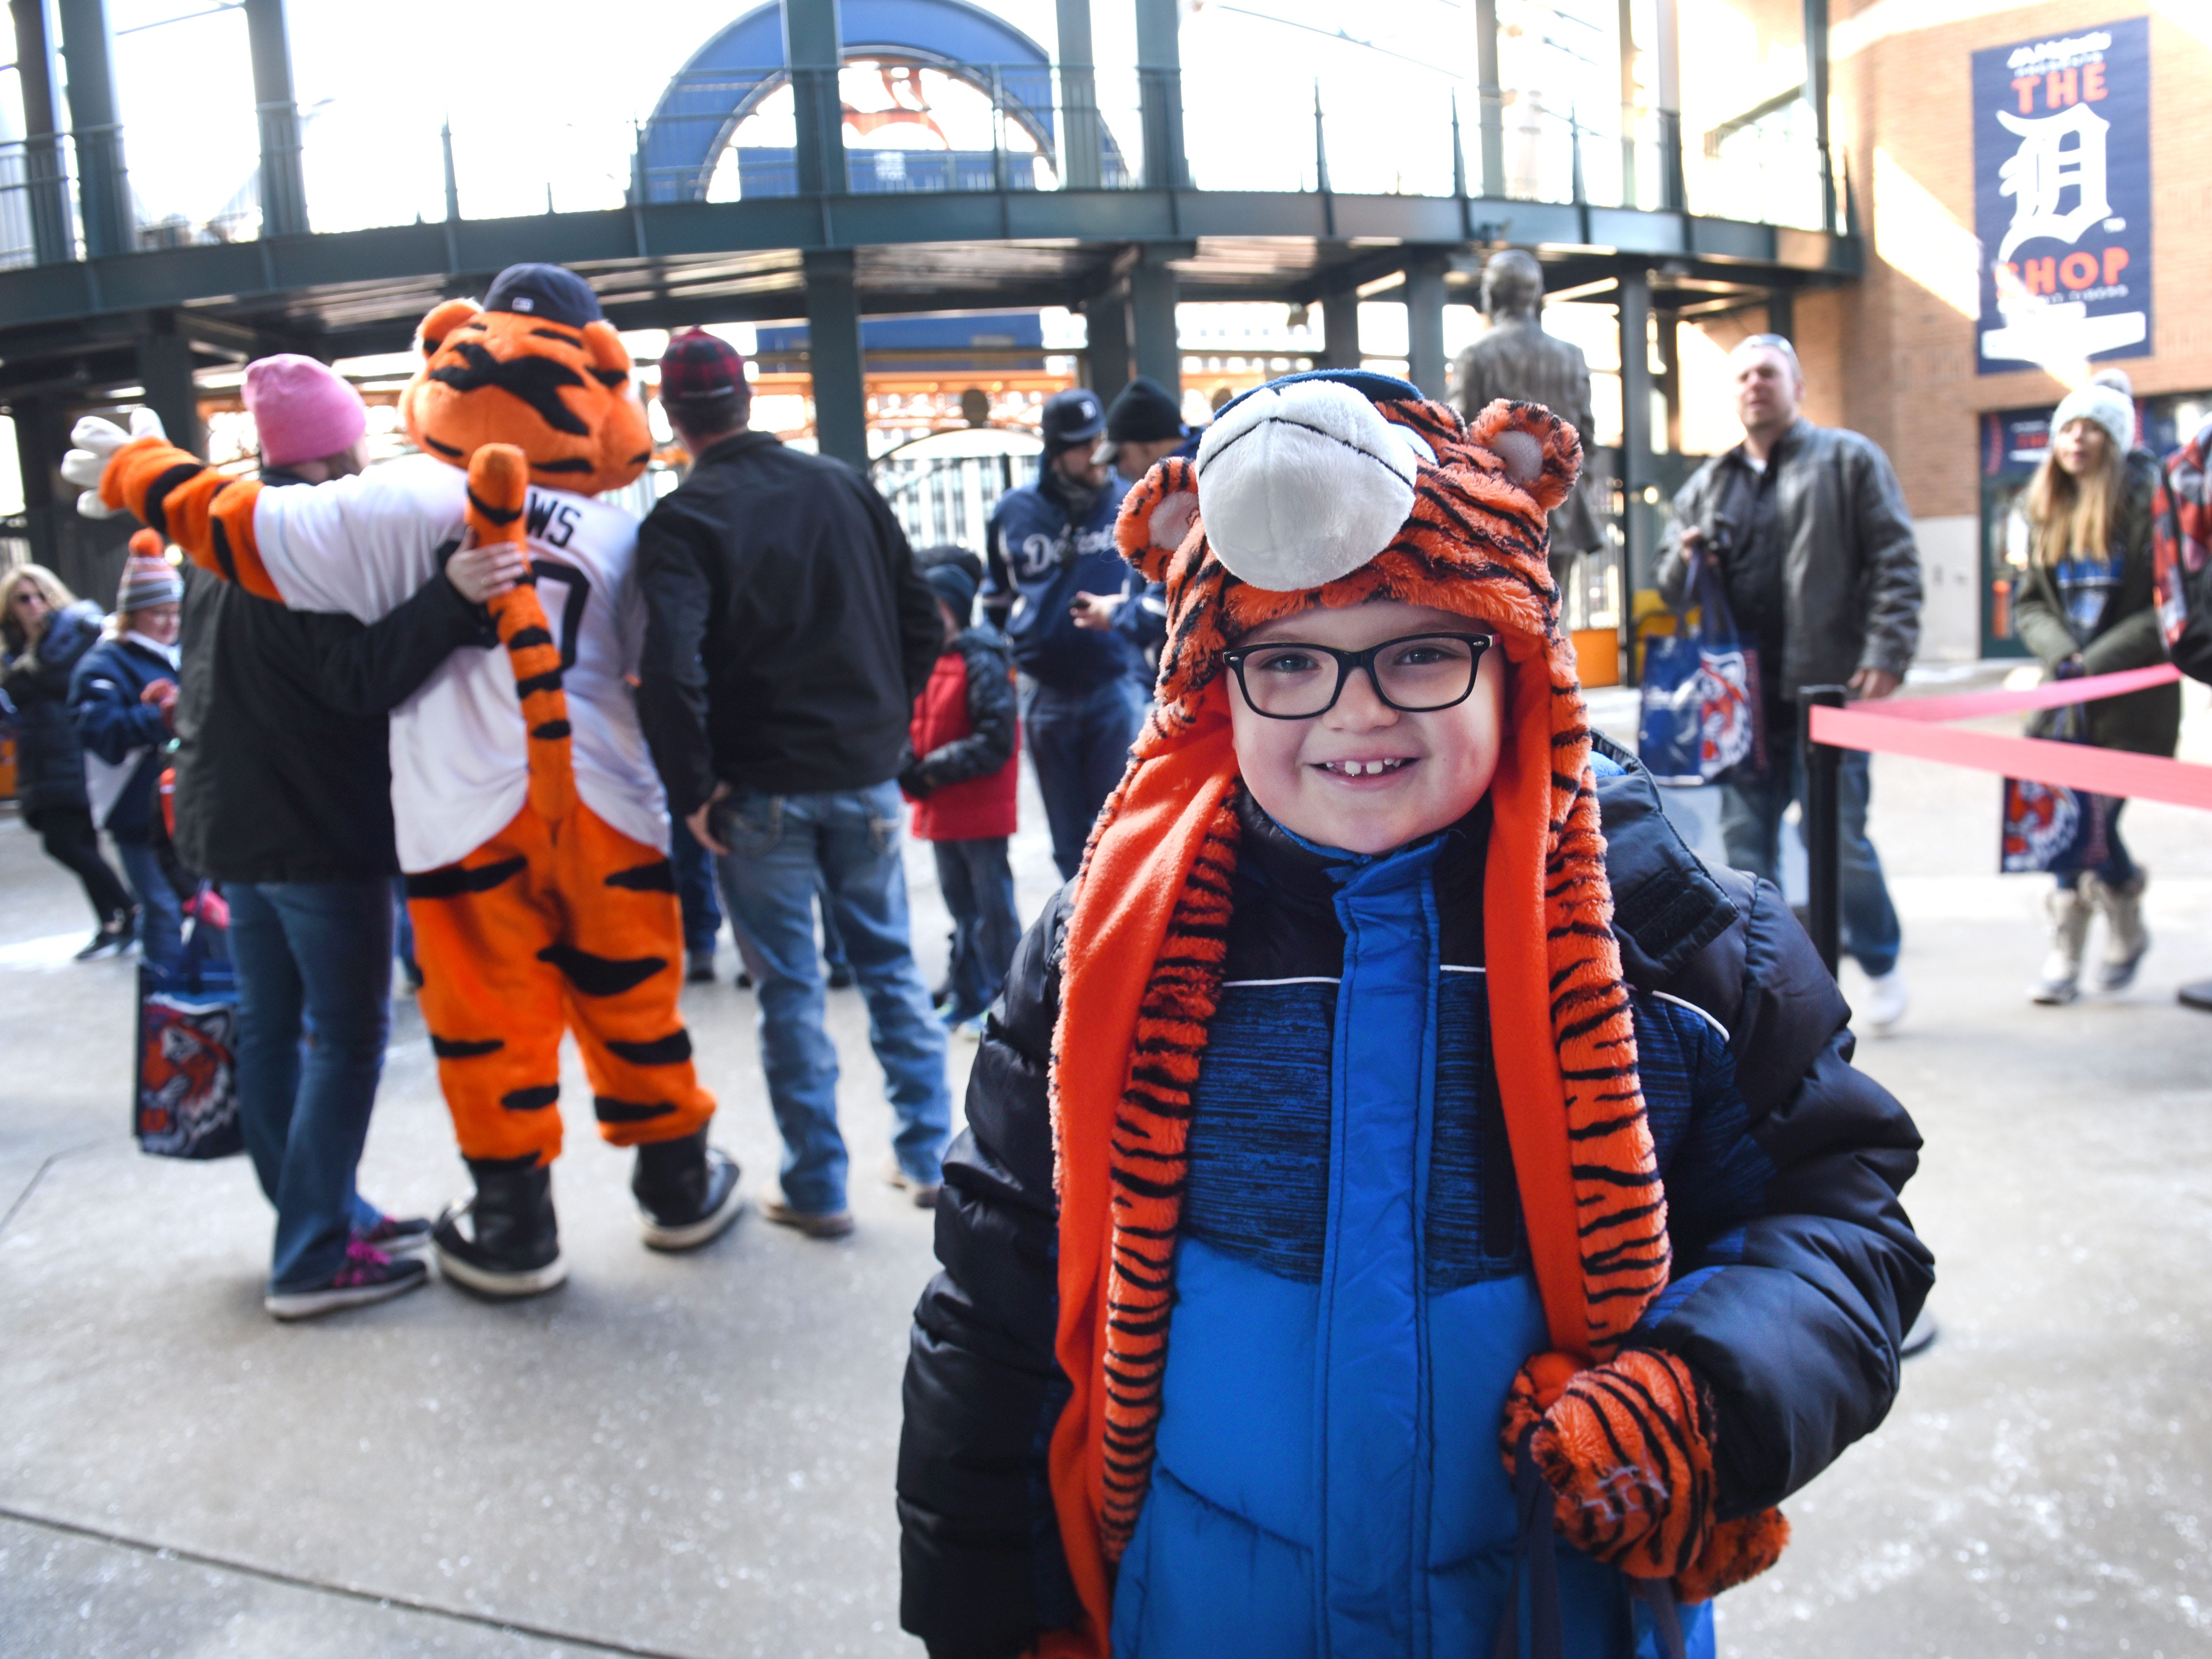 Brycen Oliver of Toledo prepares to meet Detroit Tigers mascot Paws at TigerFest .